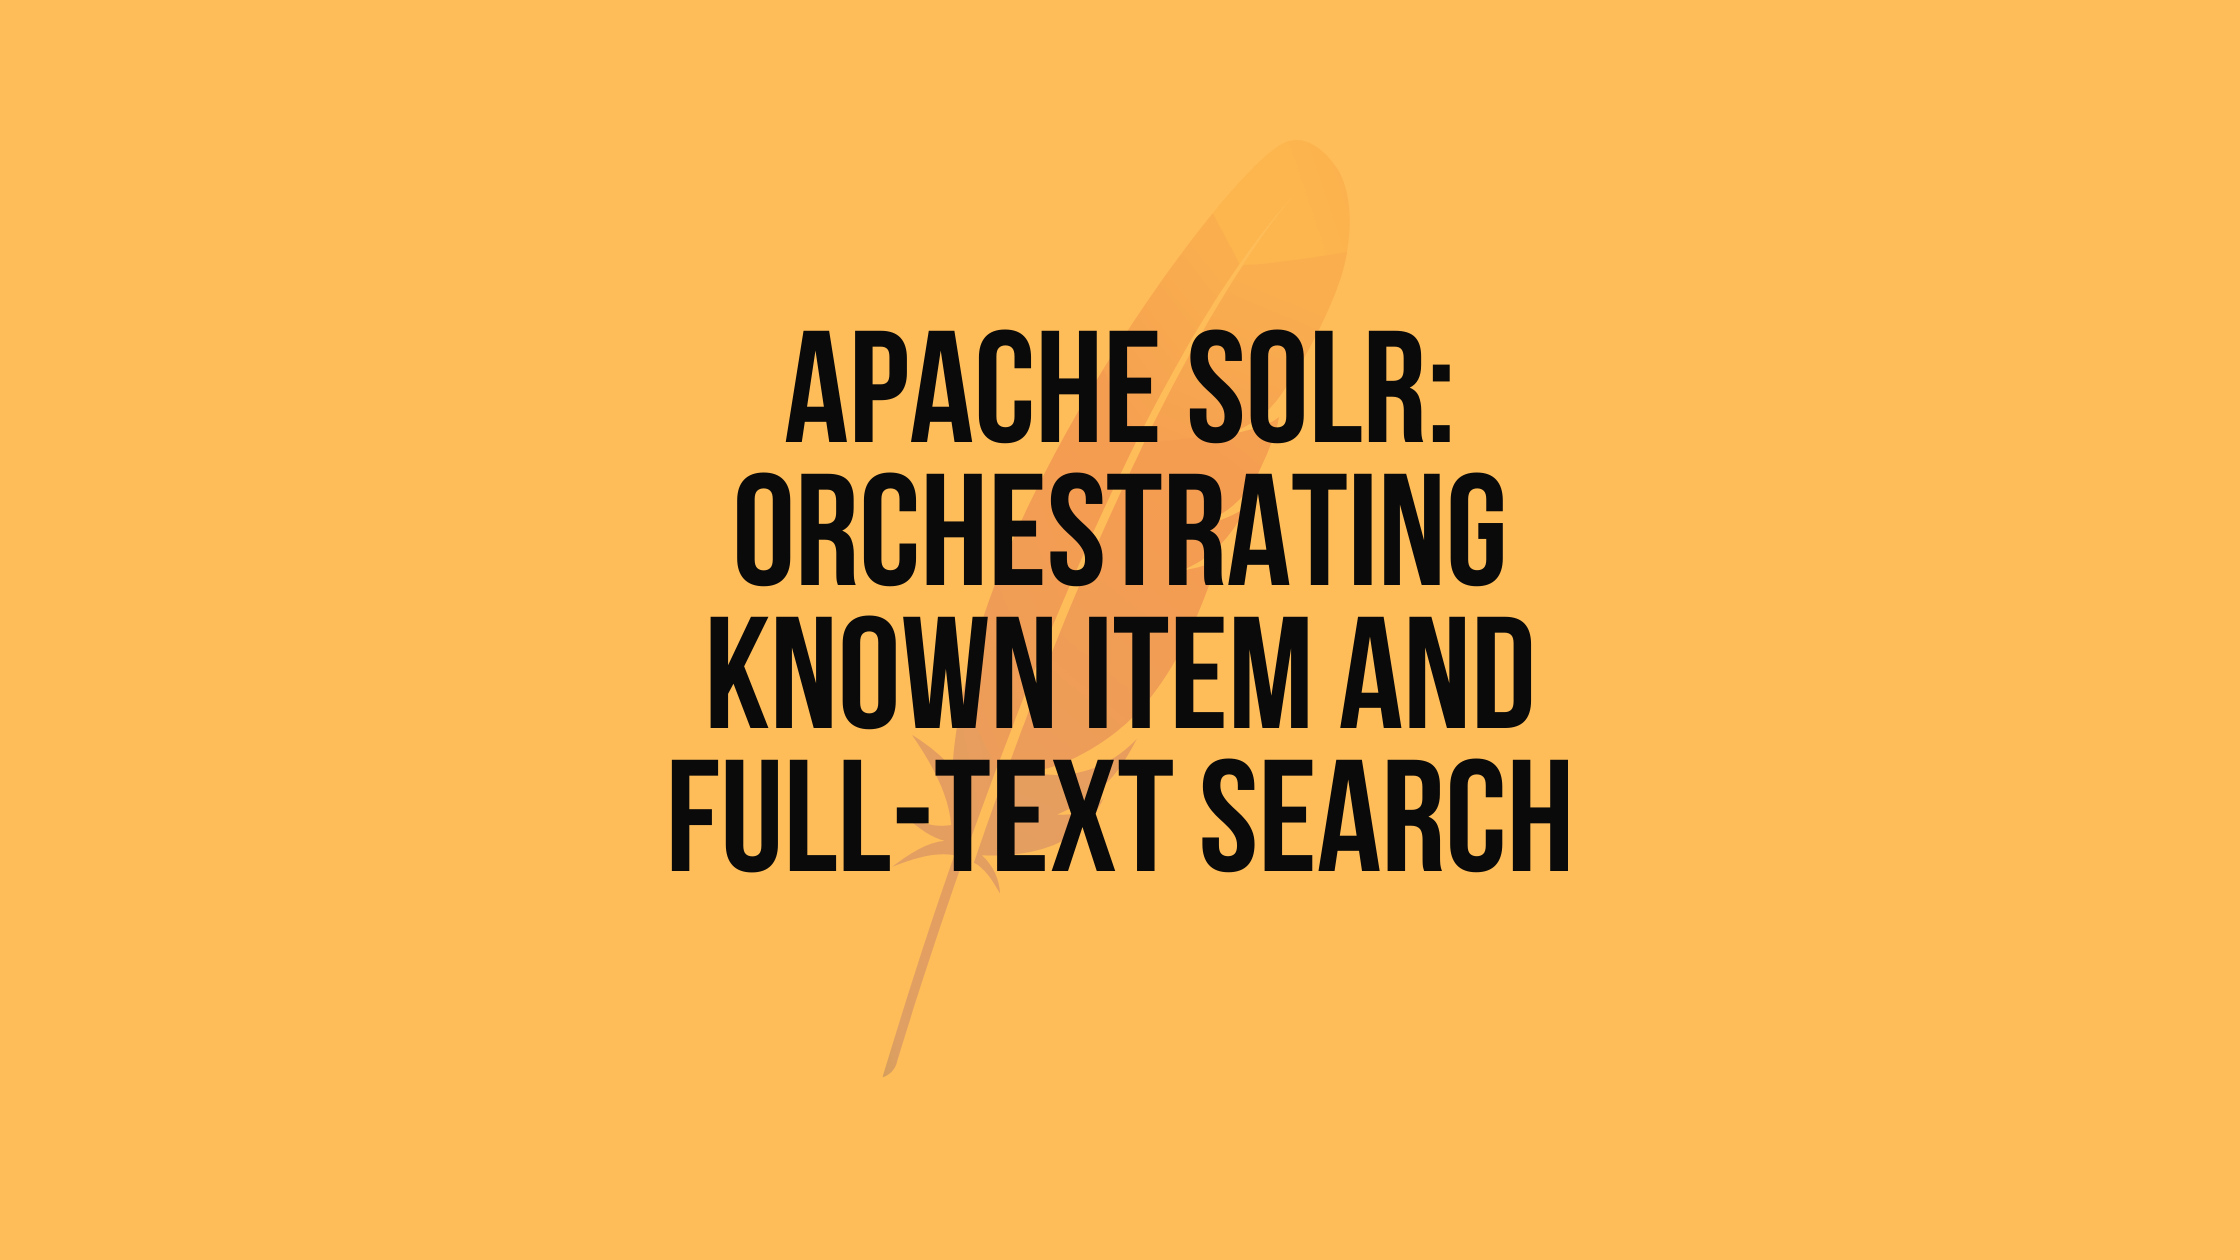 Apache Solr: orchestrating Known item and Full-text search